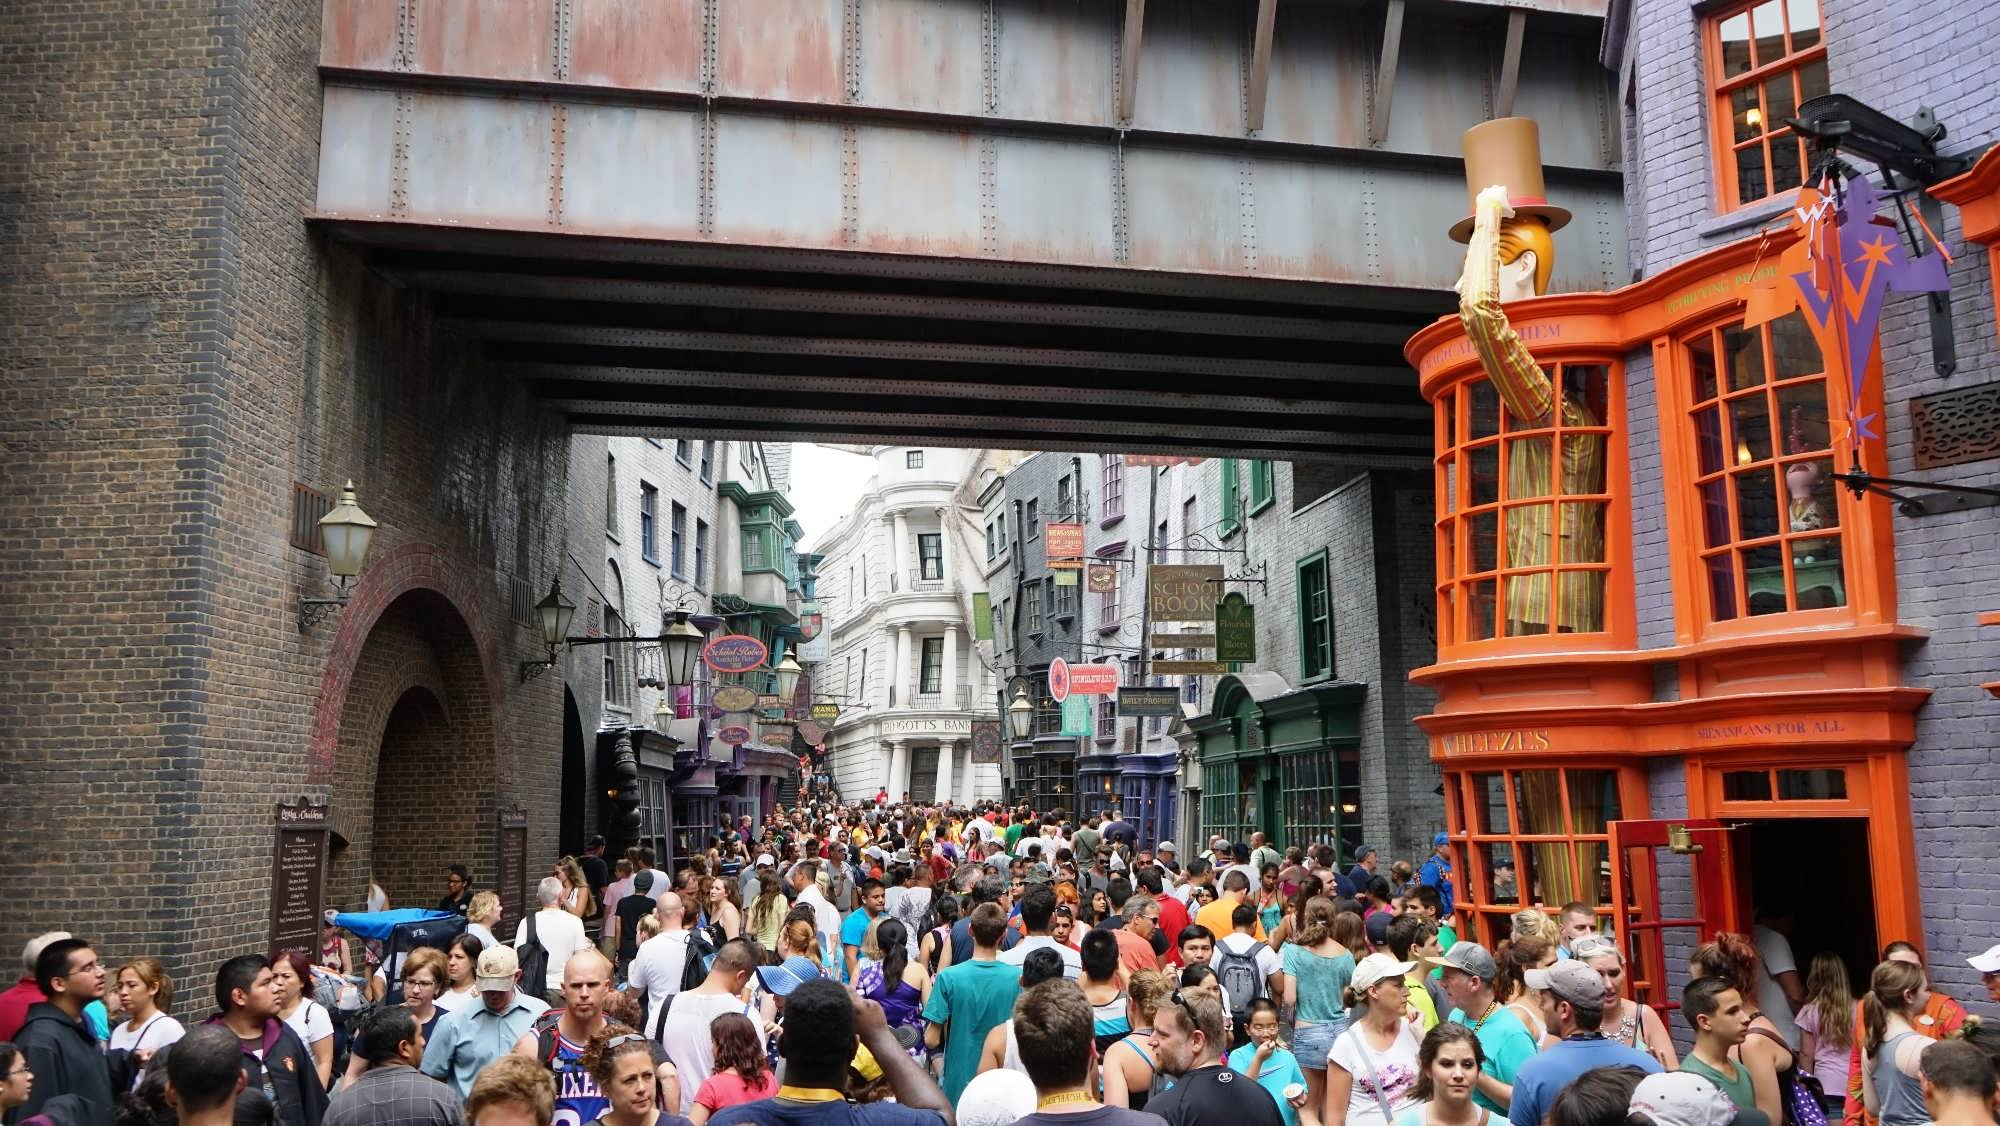 Crowds inside The Wizarding World of Harry Potter – Diagon Alley.